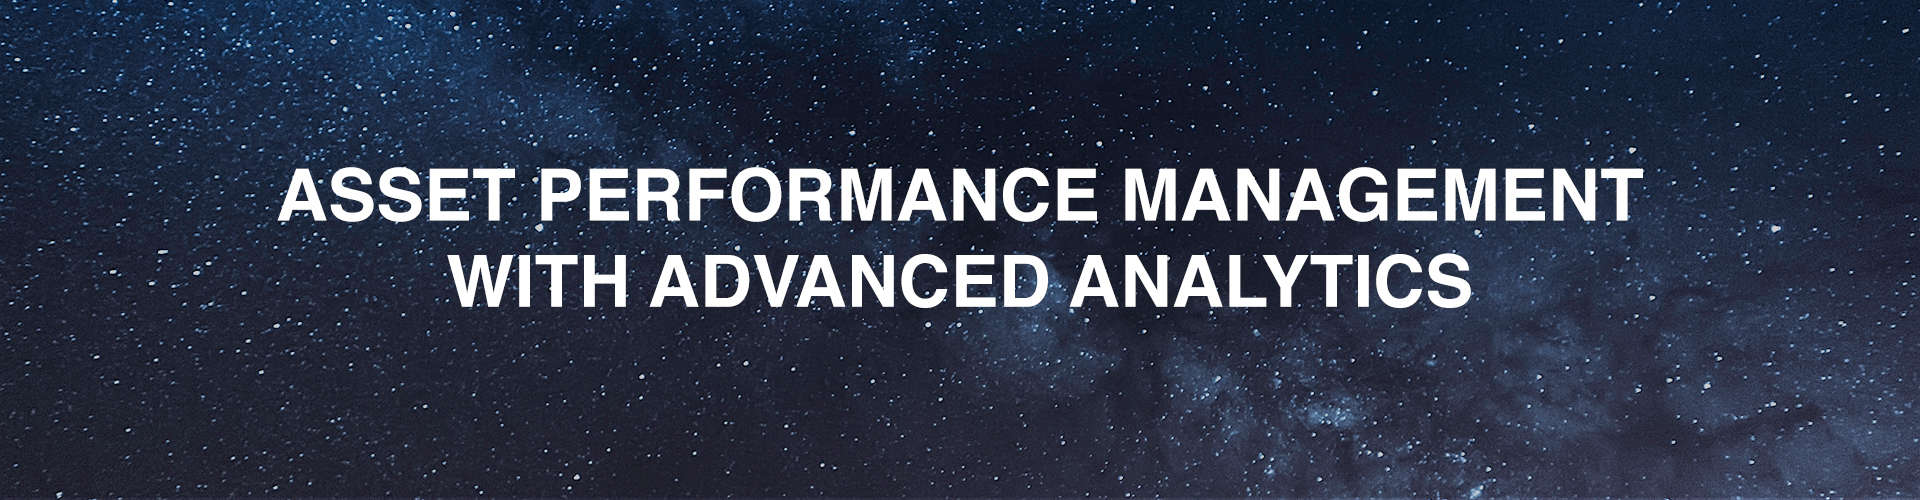 Asset Performance Management With Advanced Analytics (APM)